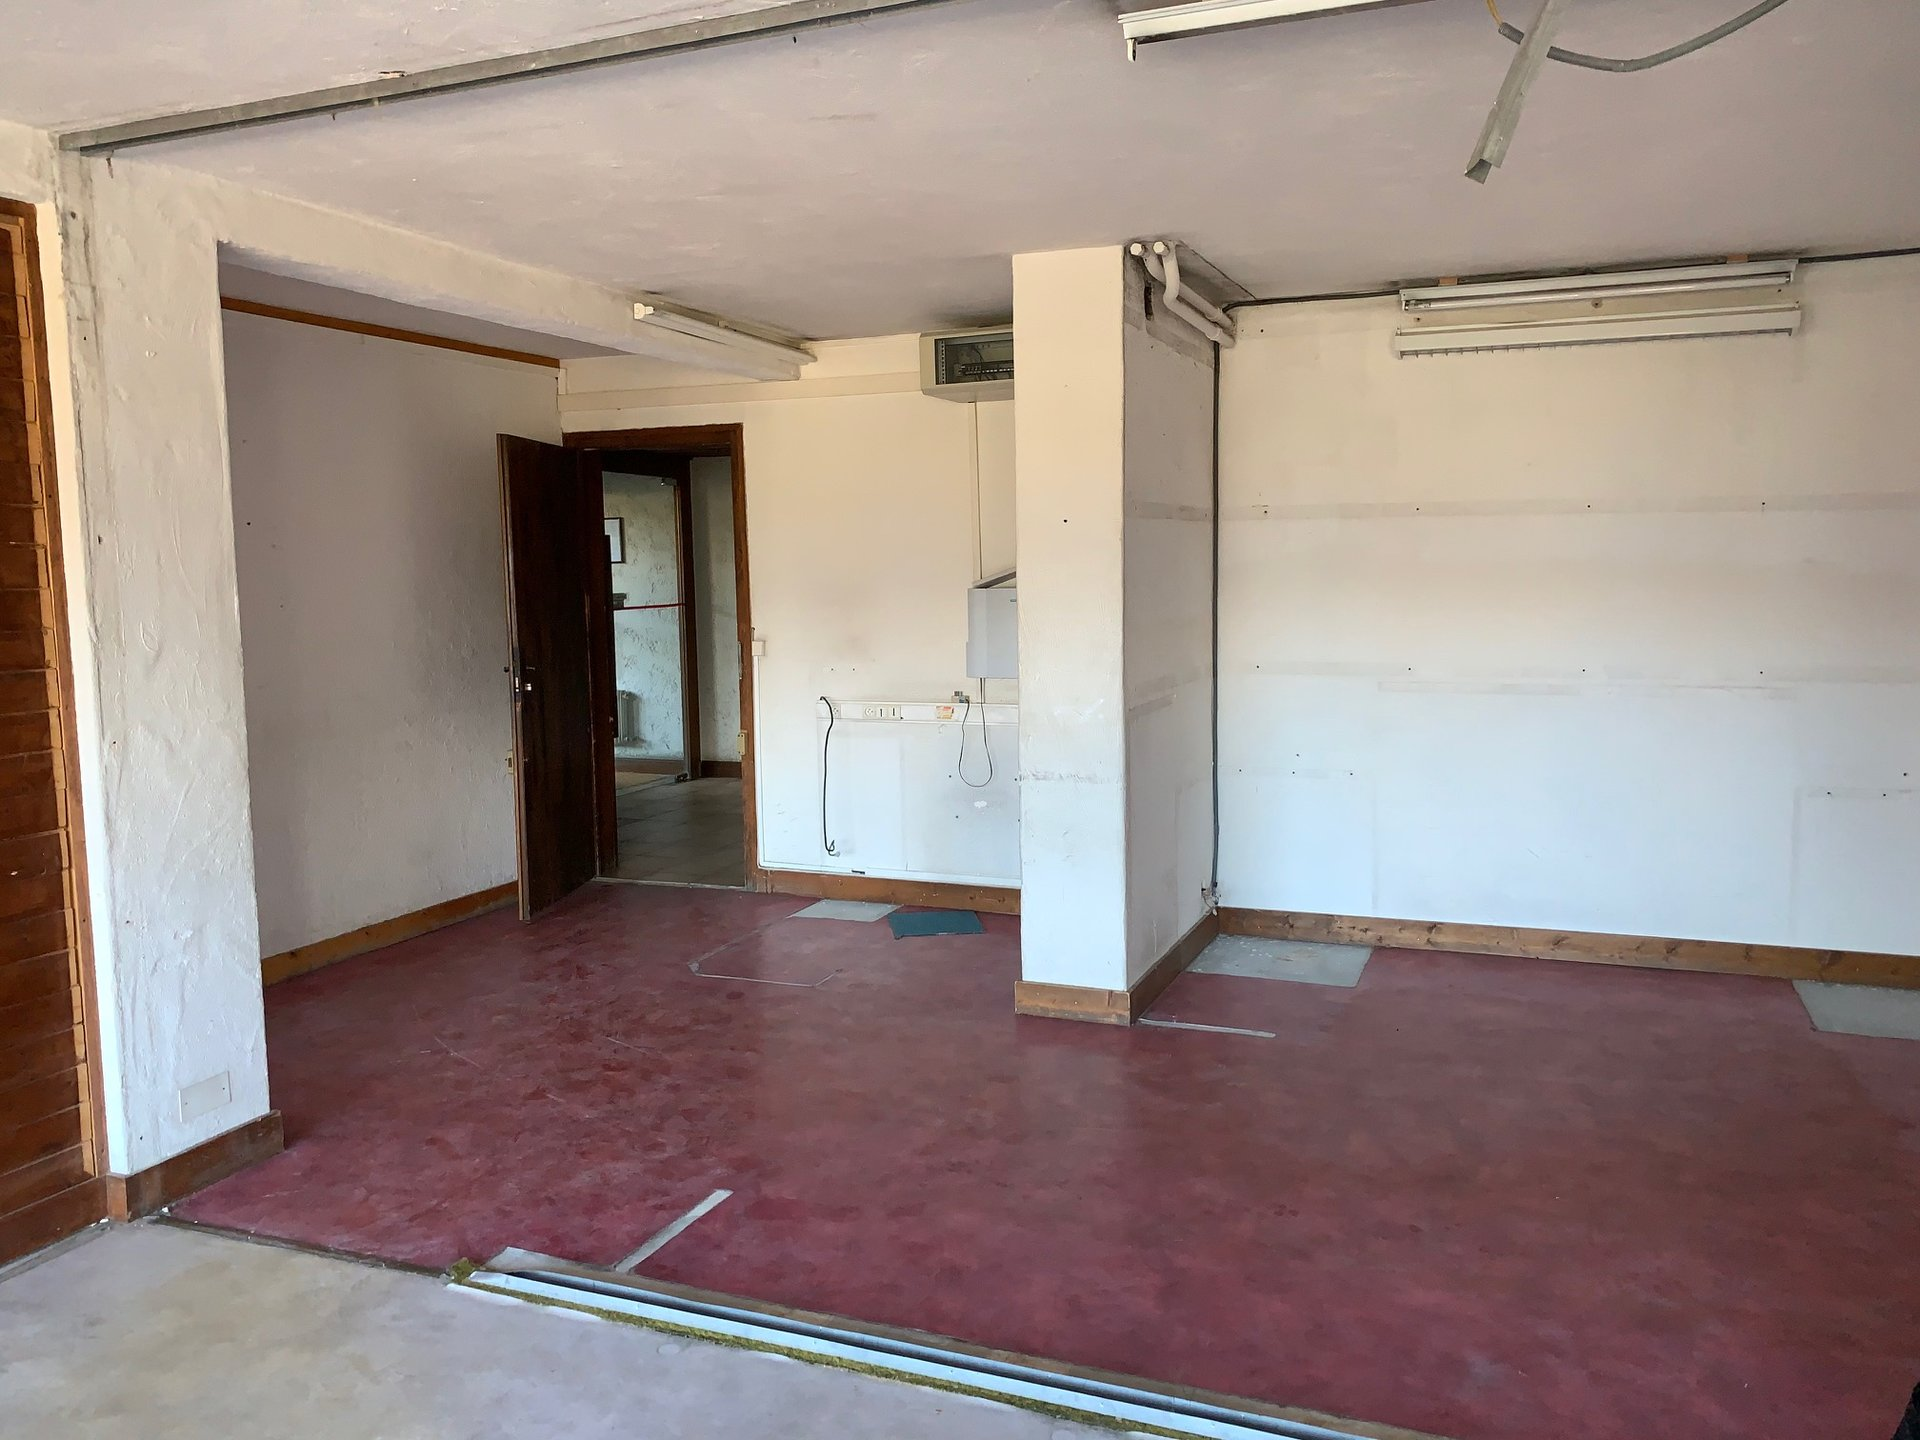 COMBLOUX CENTRE VILLE -  LOCAL COMMERCIAL A RENOVER EN APPARTEMENT  87M²